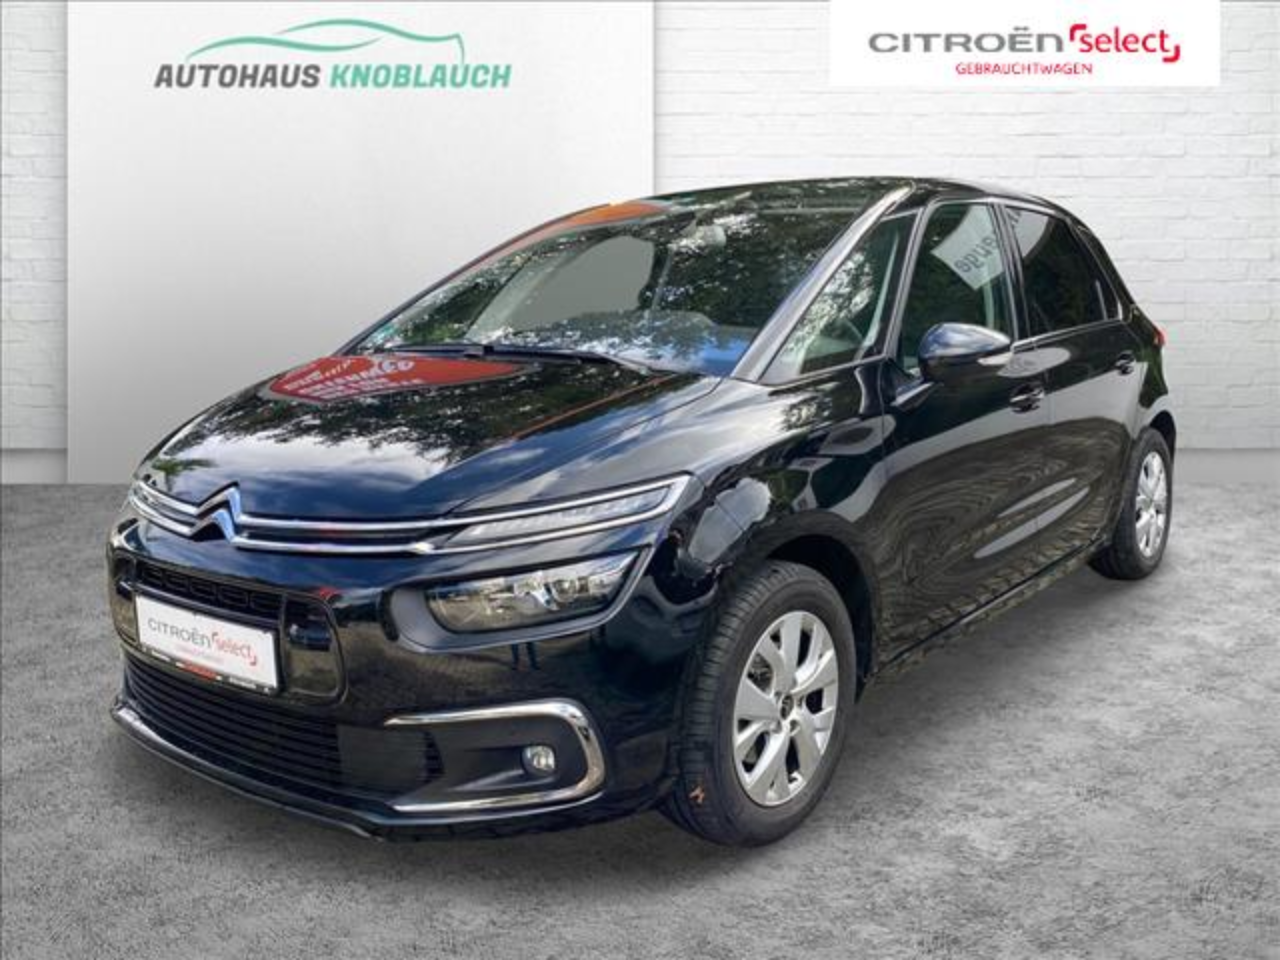 Citroën C4 Spacetourer Selection HDi130 Klimaauto